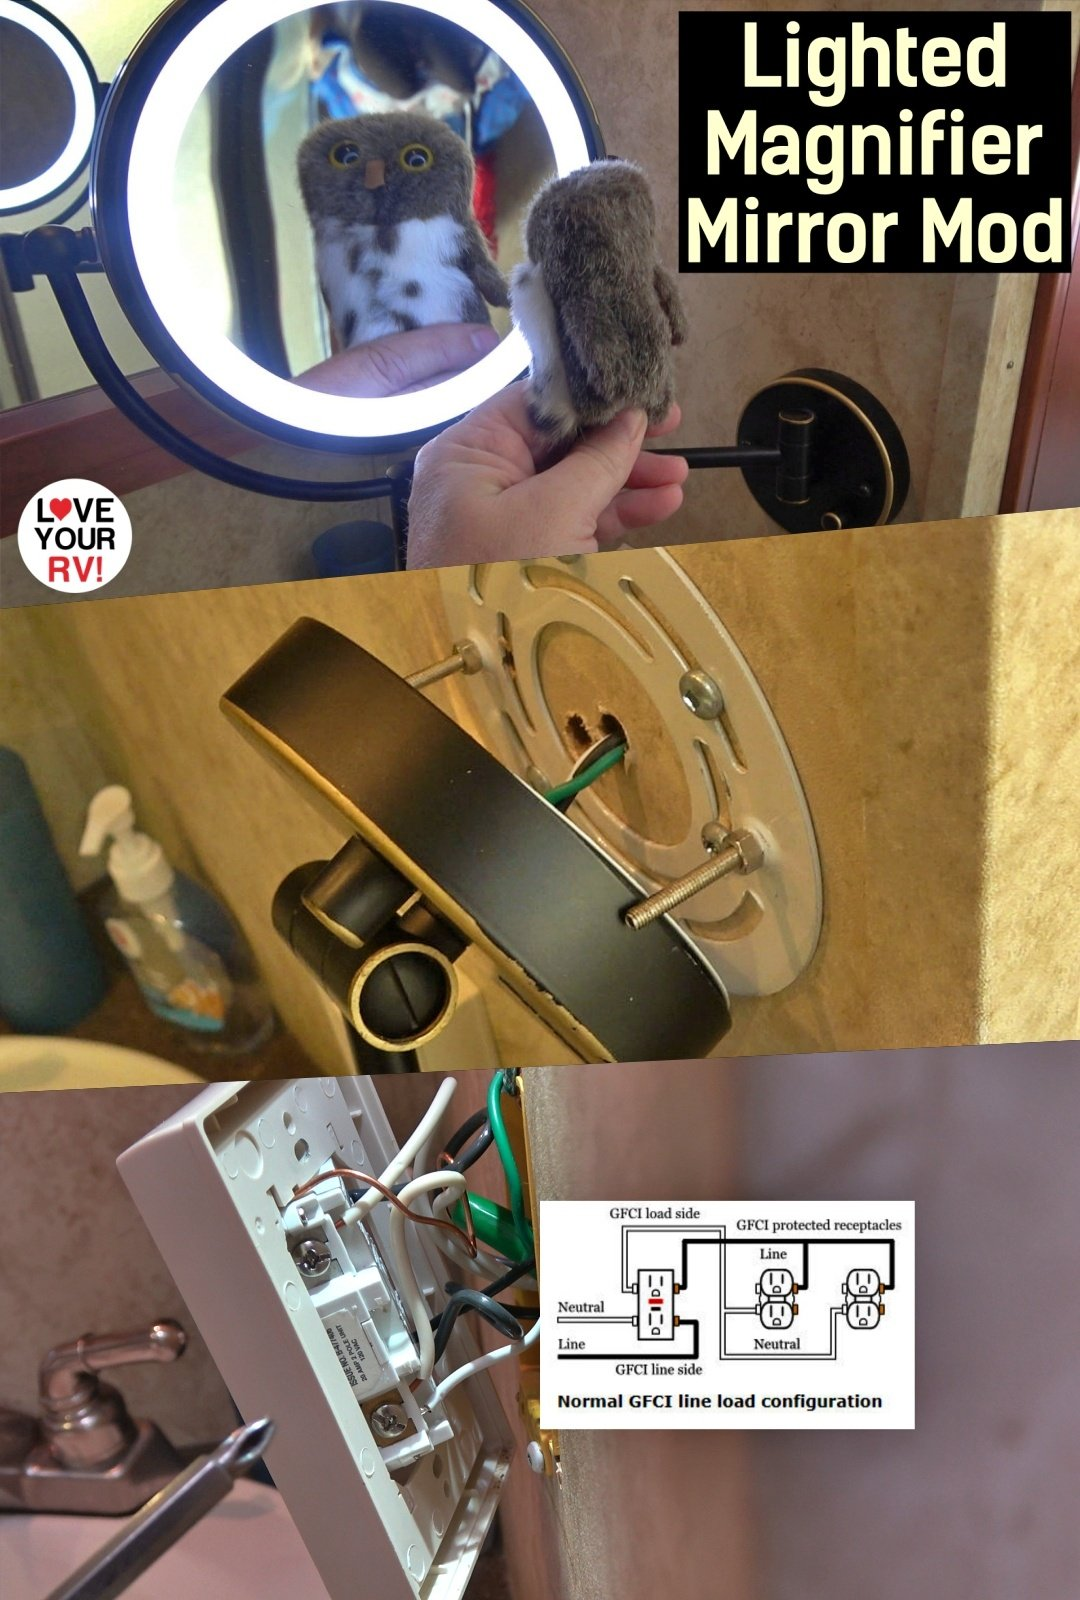 Installing a Lighted Magnifier Mirror into our RV Bathroom